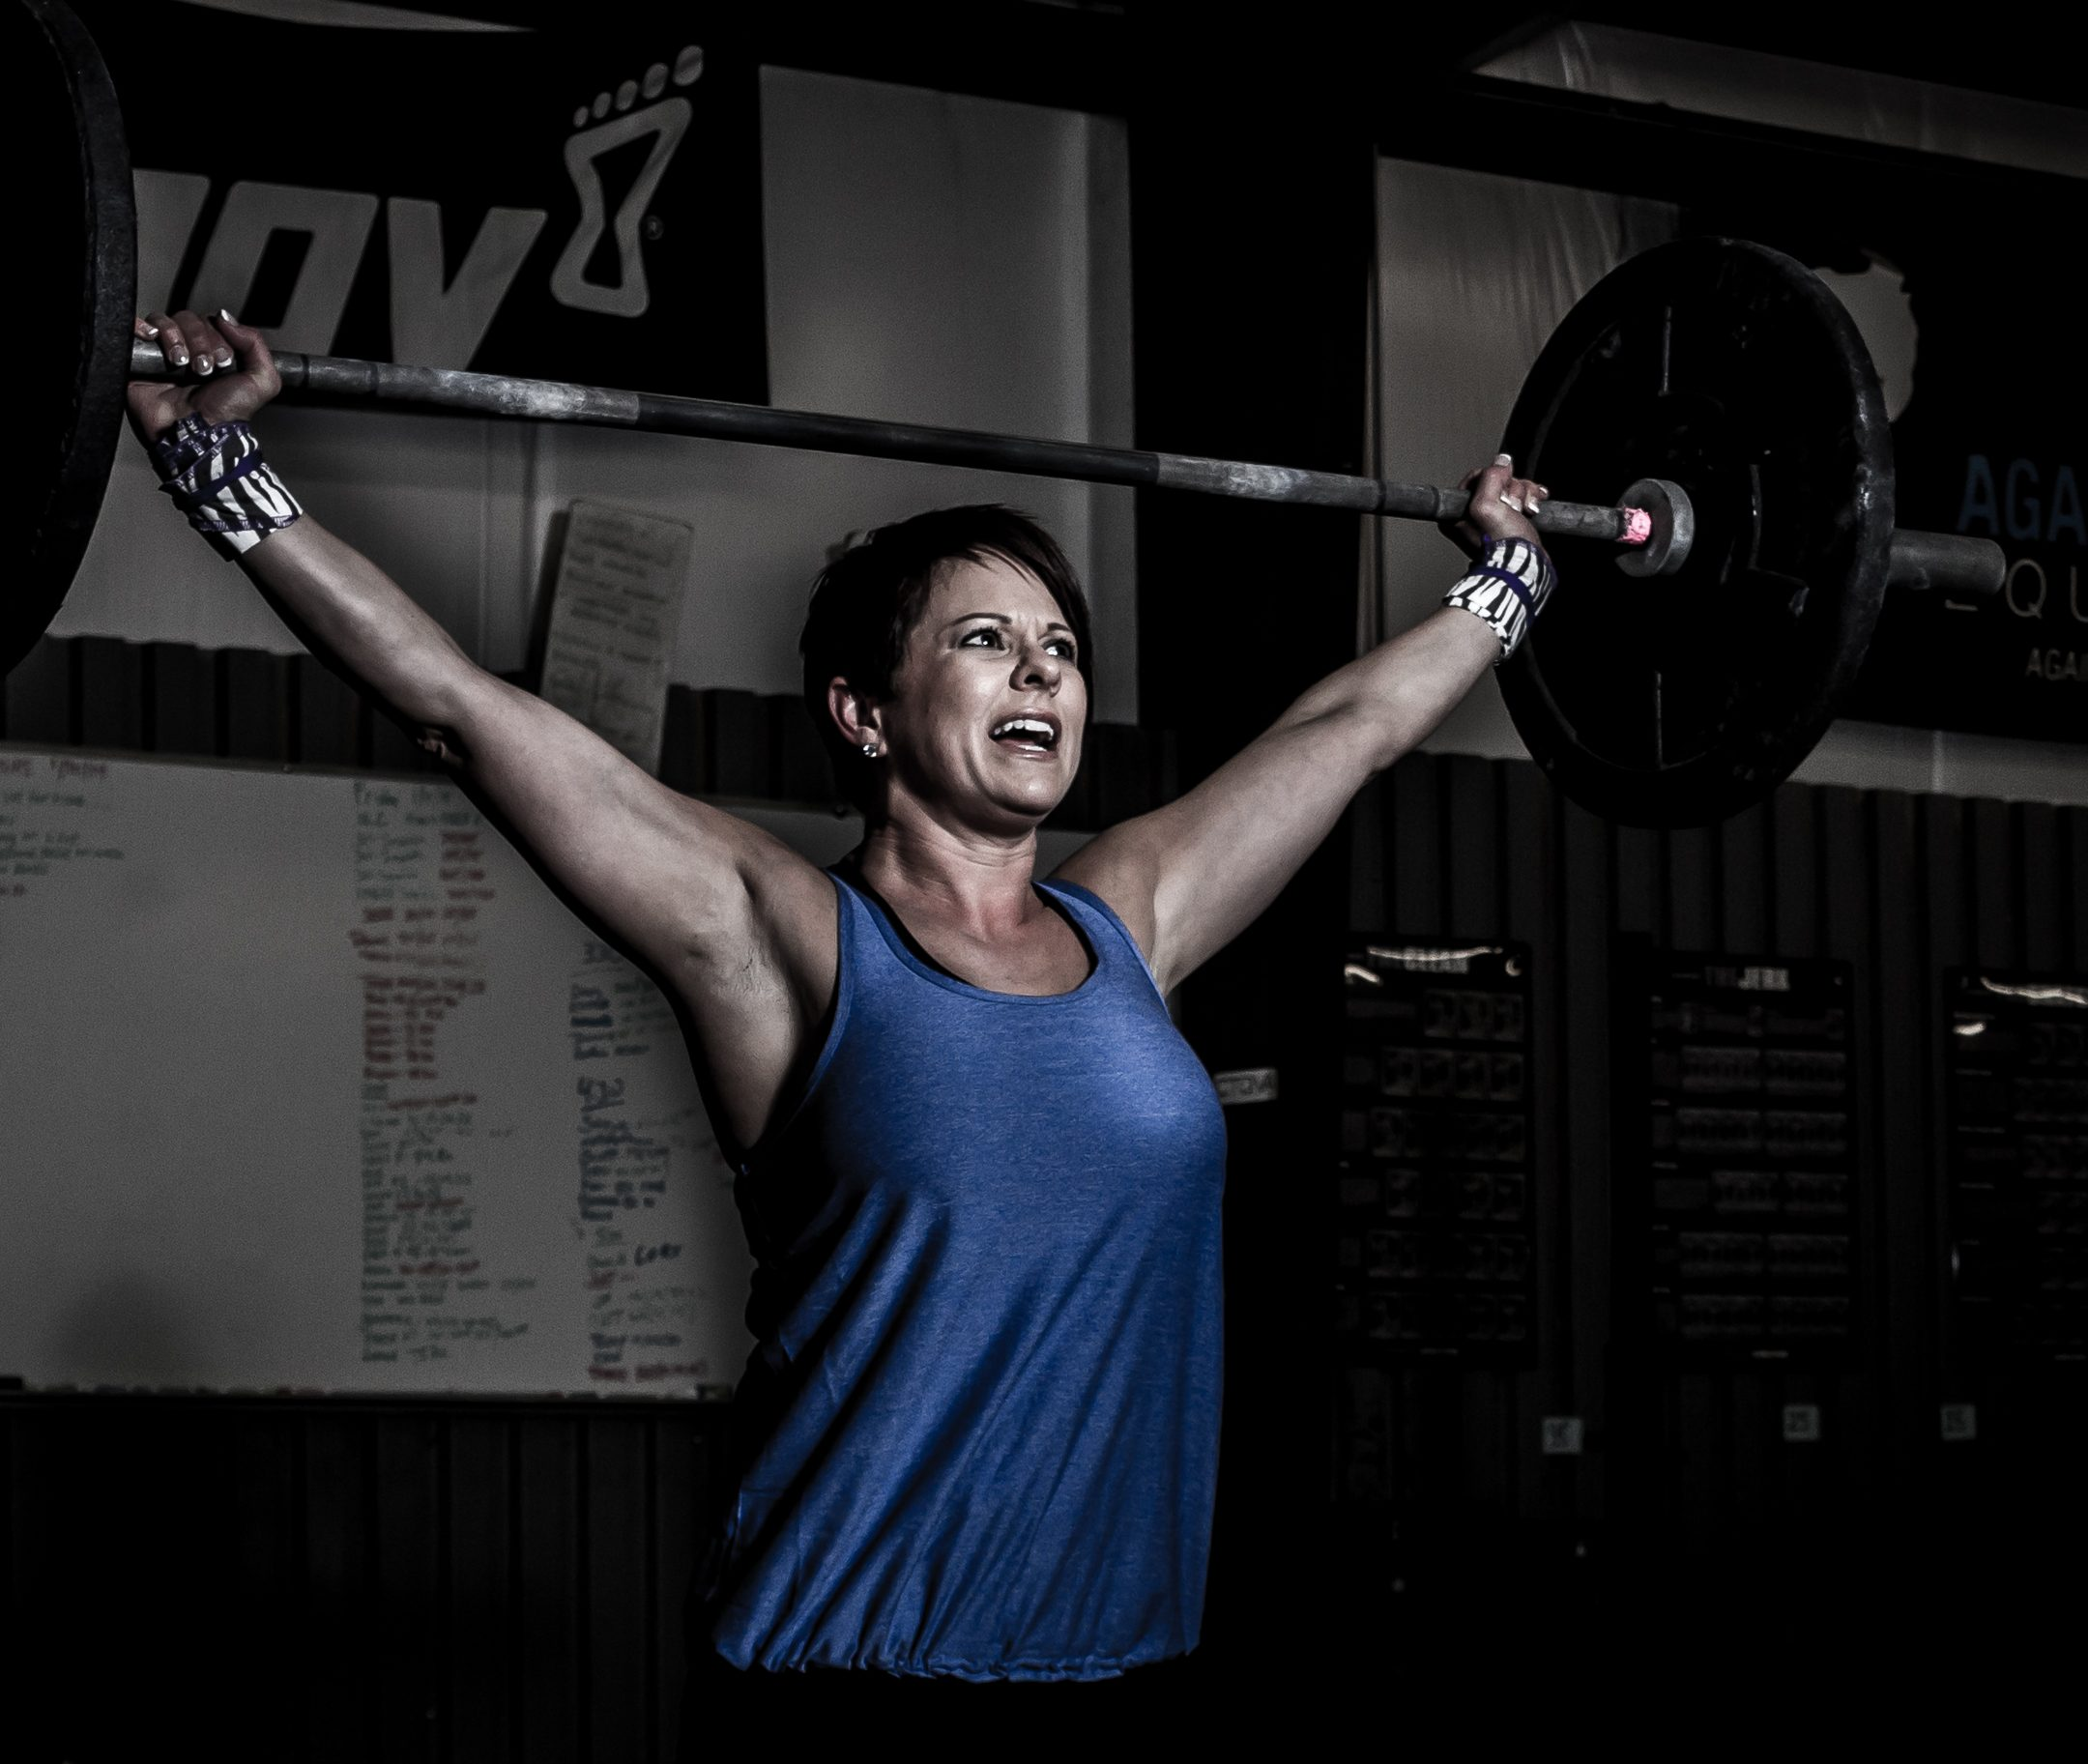 5 reasons women need to lift weights